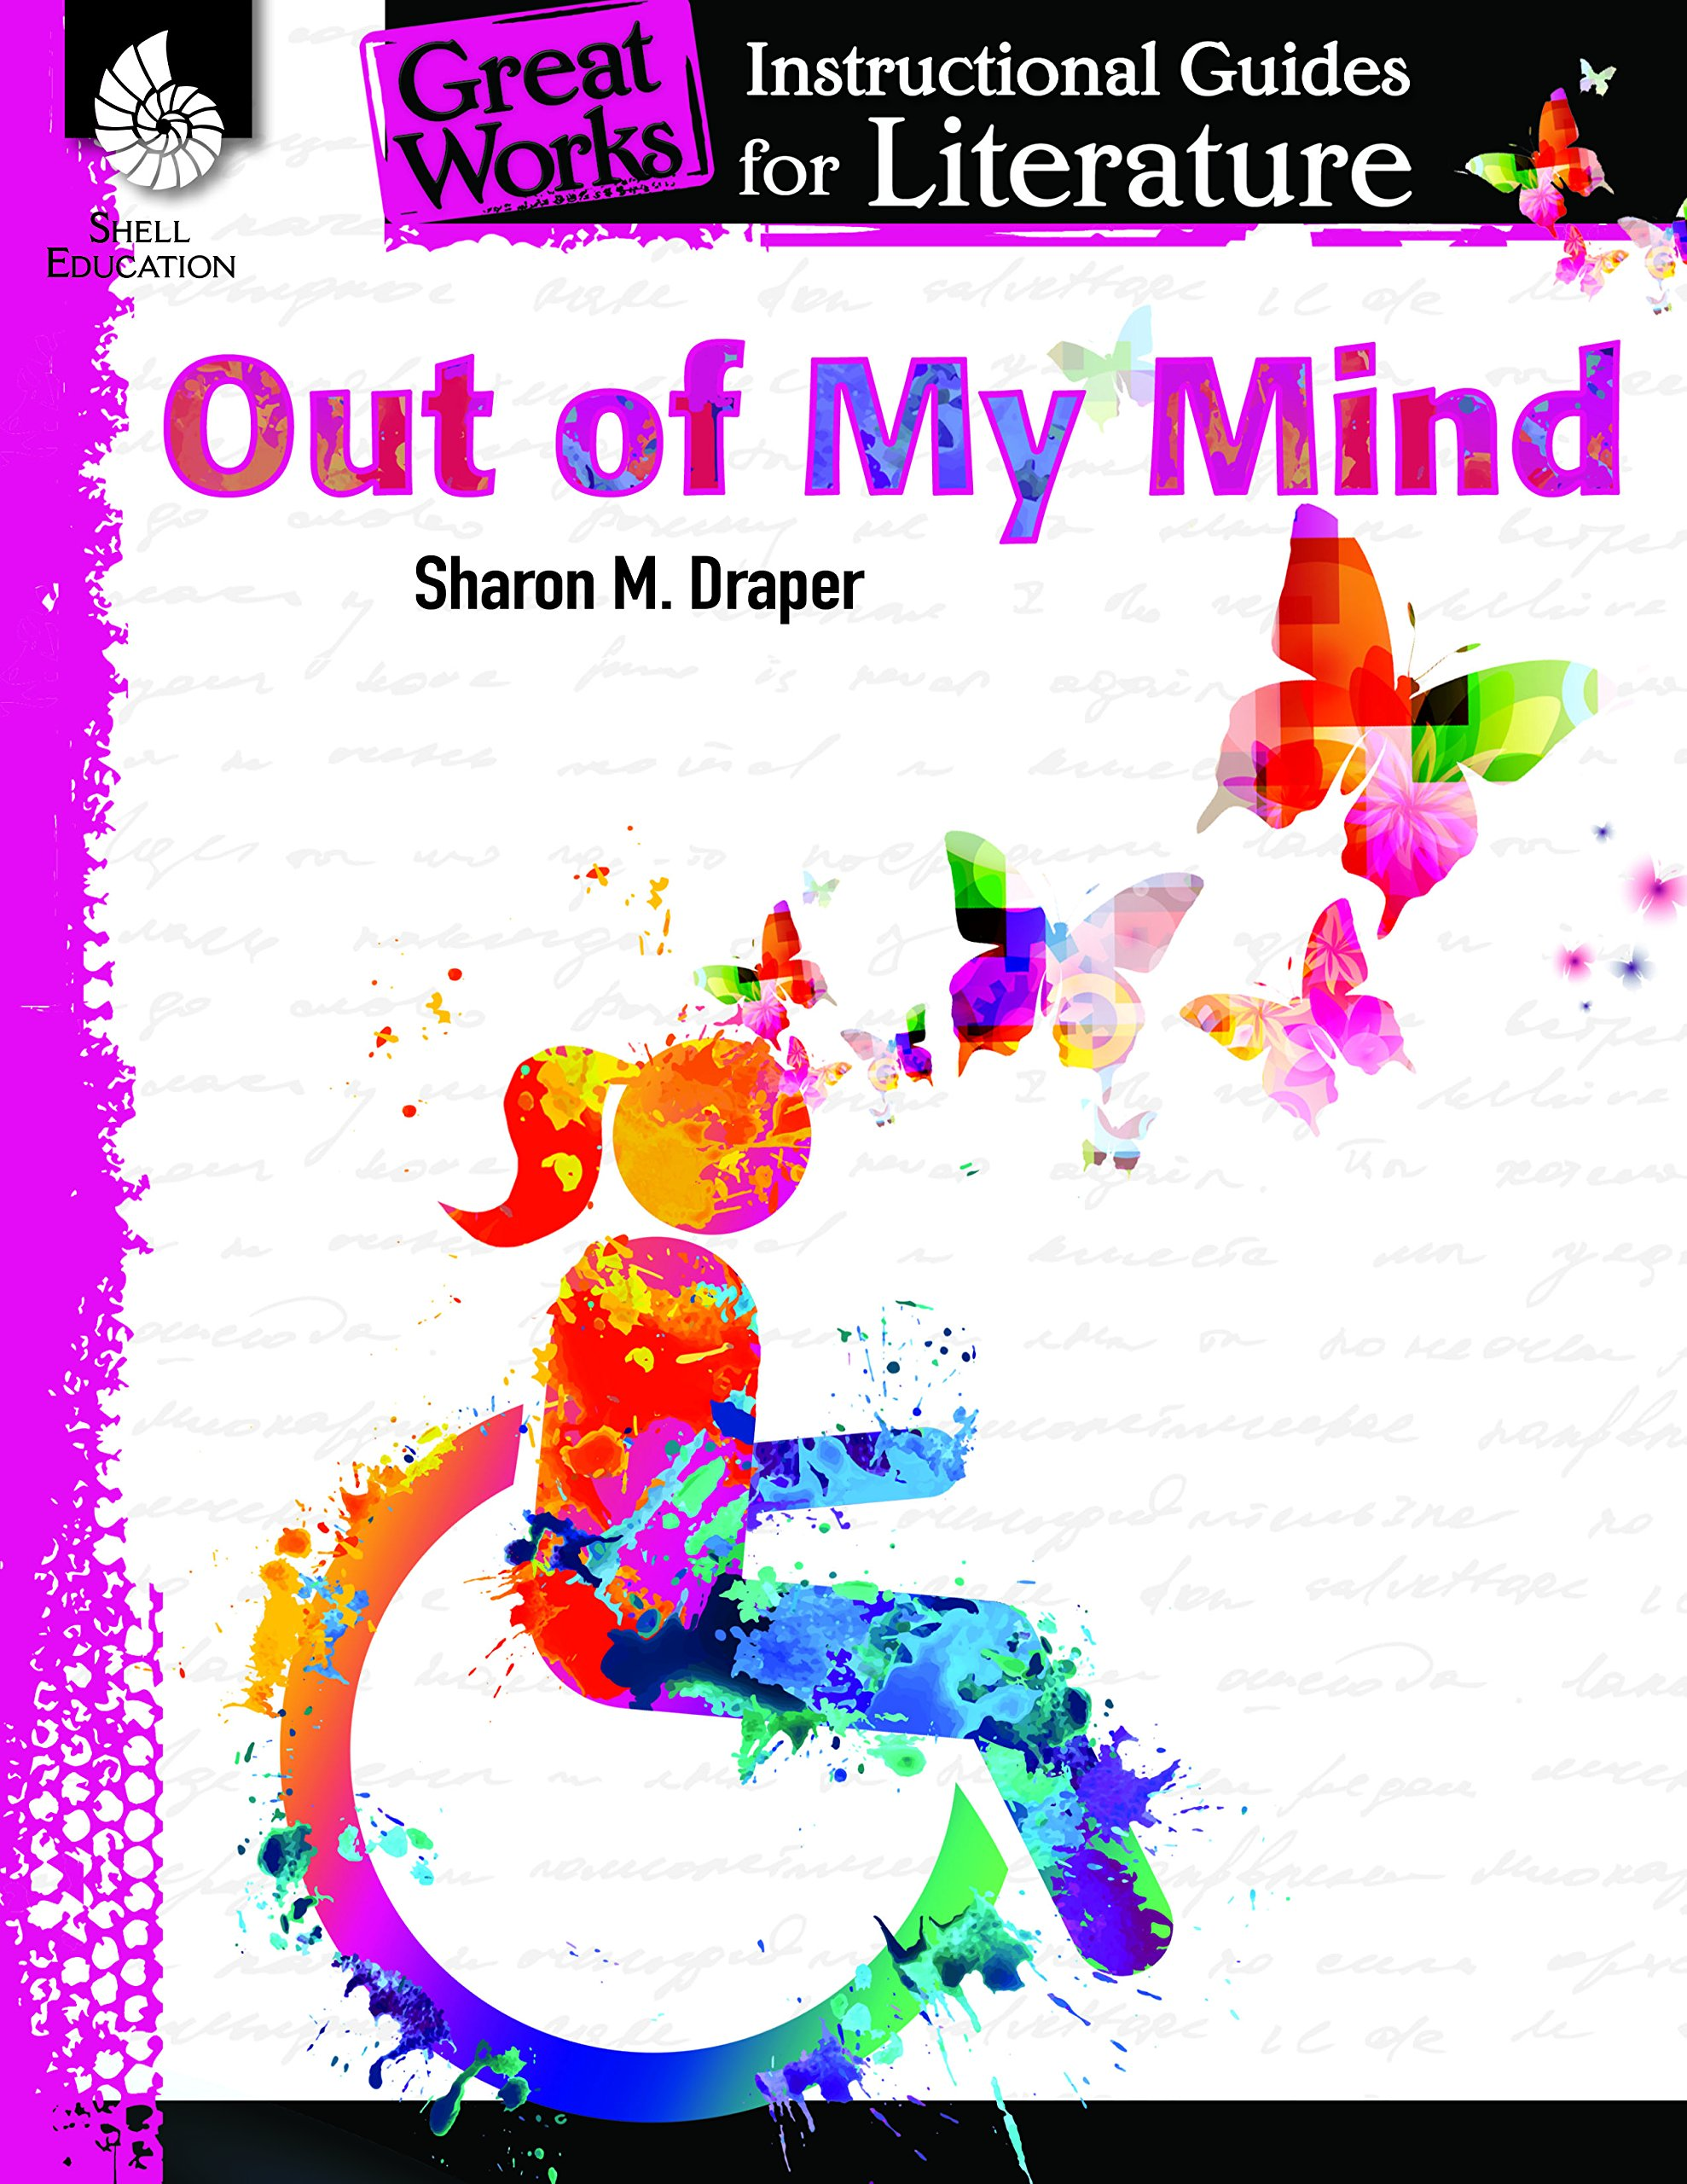 Download Out of My Mind: An Instructional Guide for Literature (Great Works) ebook